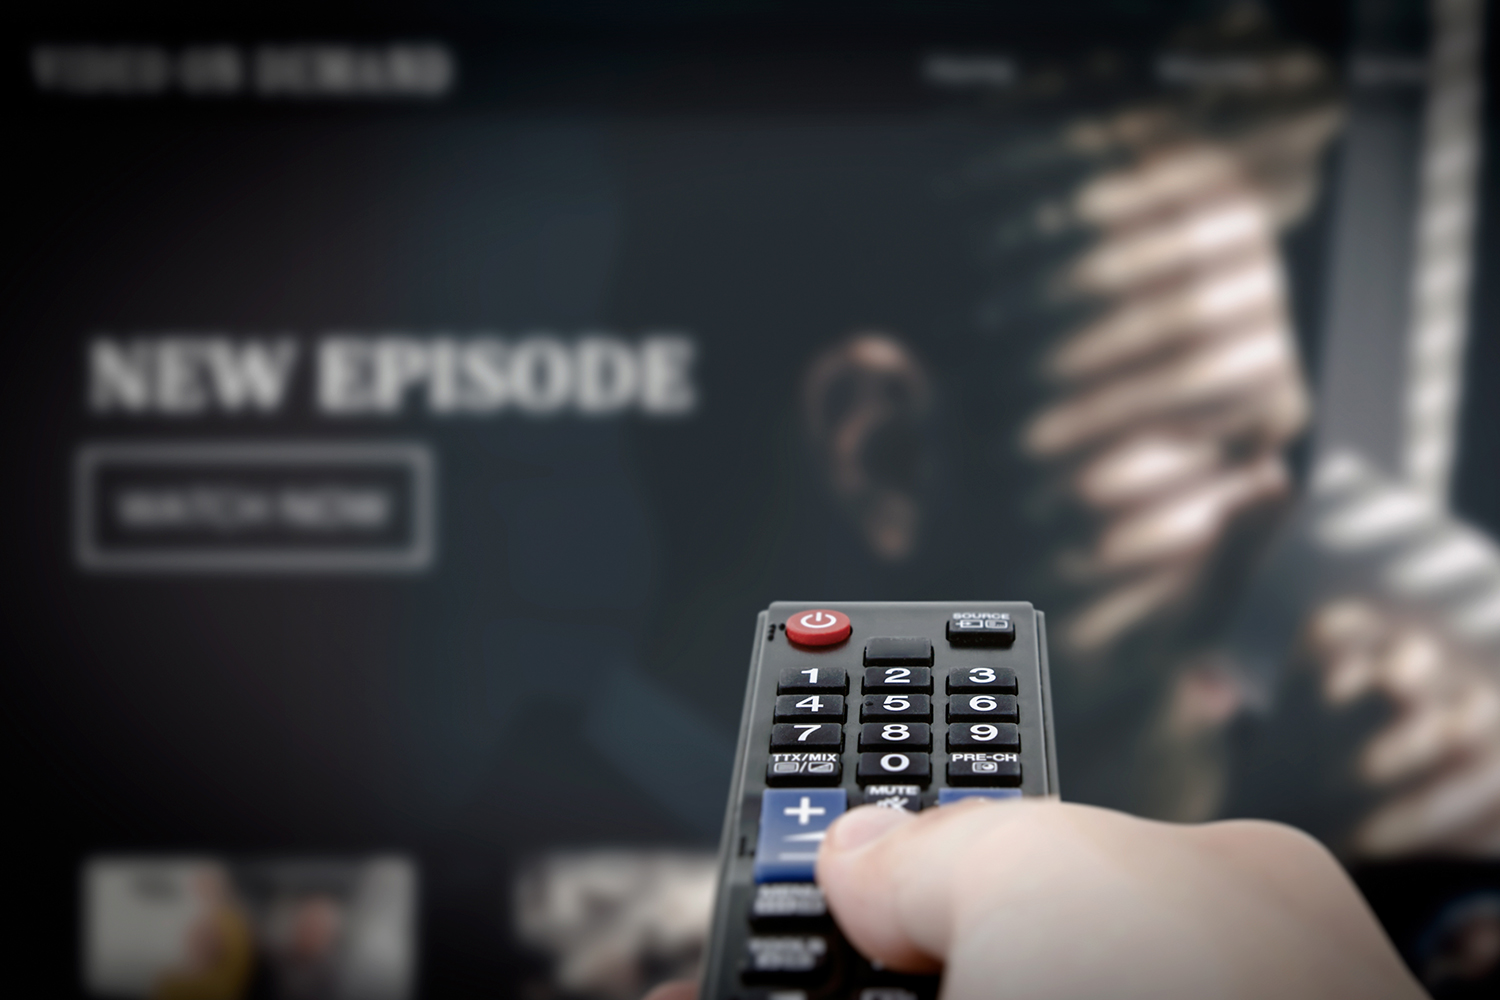 Disney+ wins the battle for new US video streaming subscribers